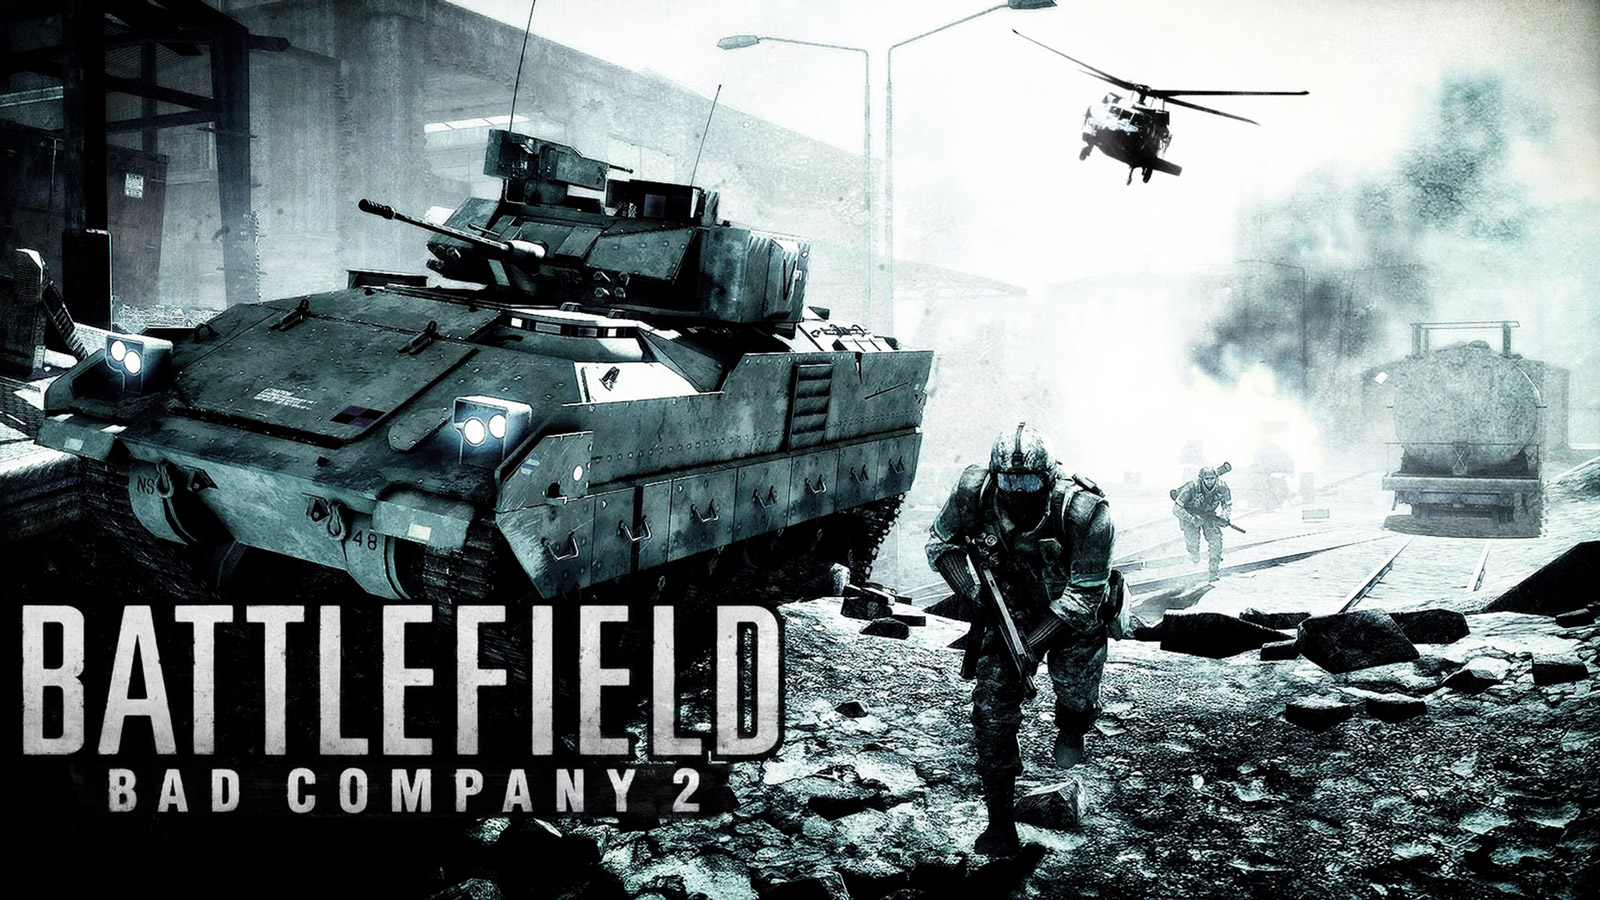 Battlefield: Bad Company 2 Wallpaper in 1600x900